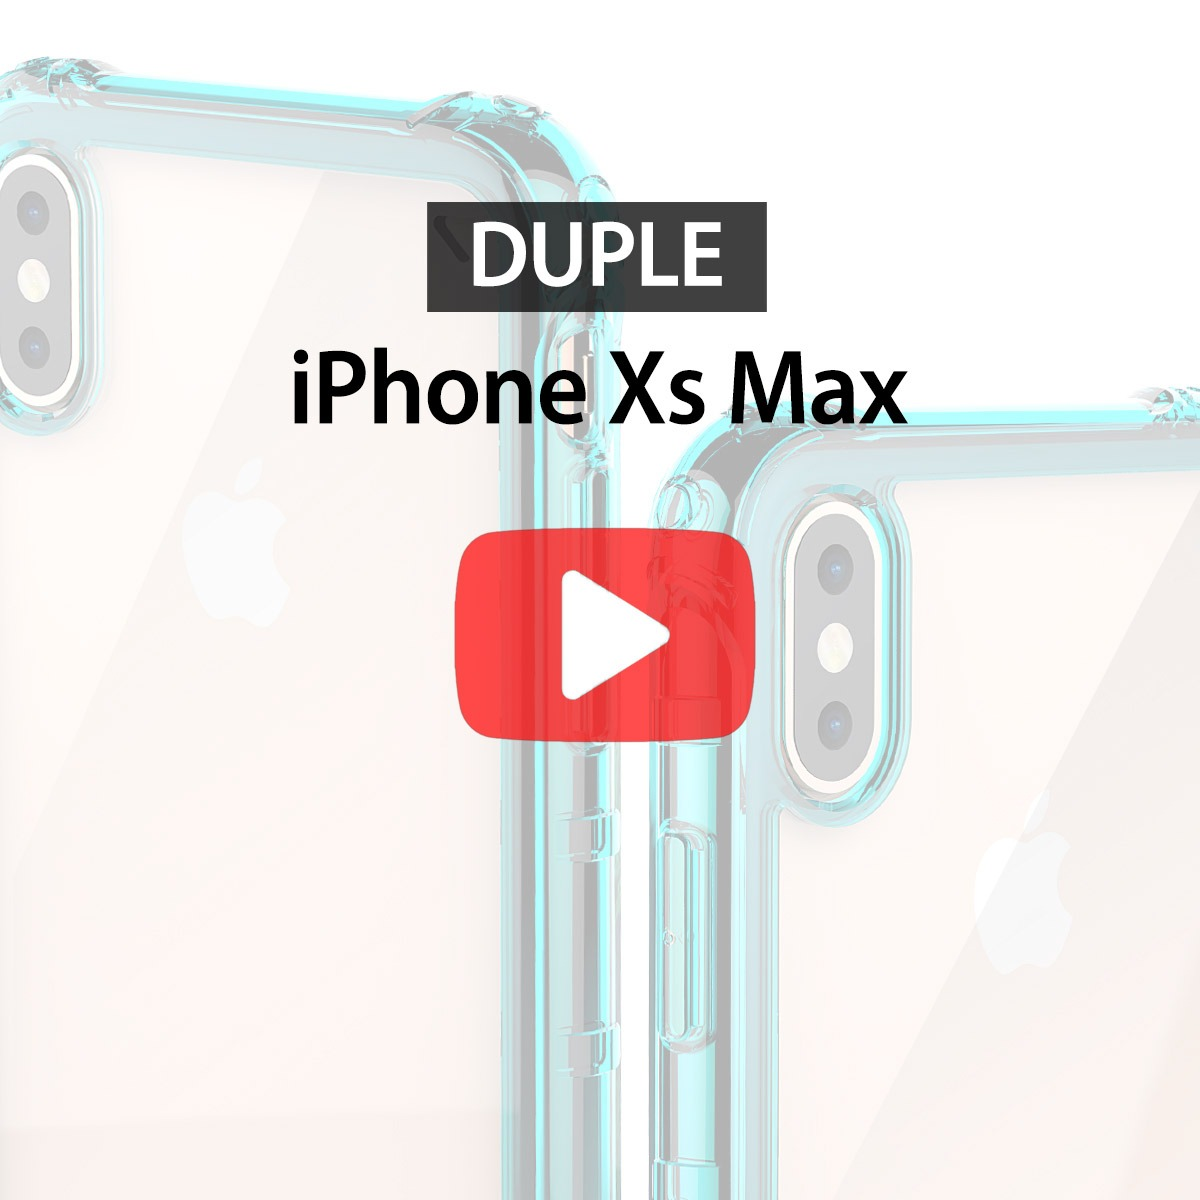 [araree] iPhone Xs Max case Duple unboxing